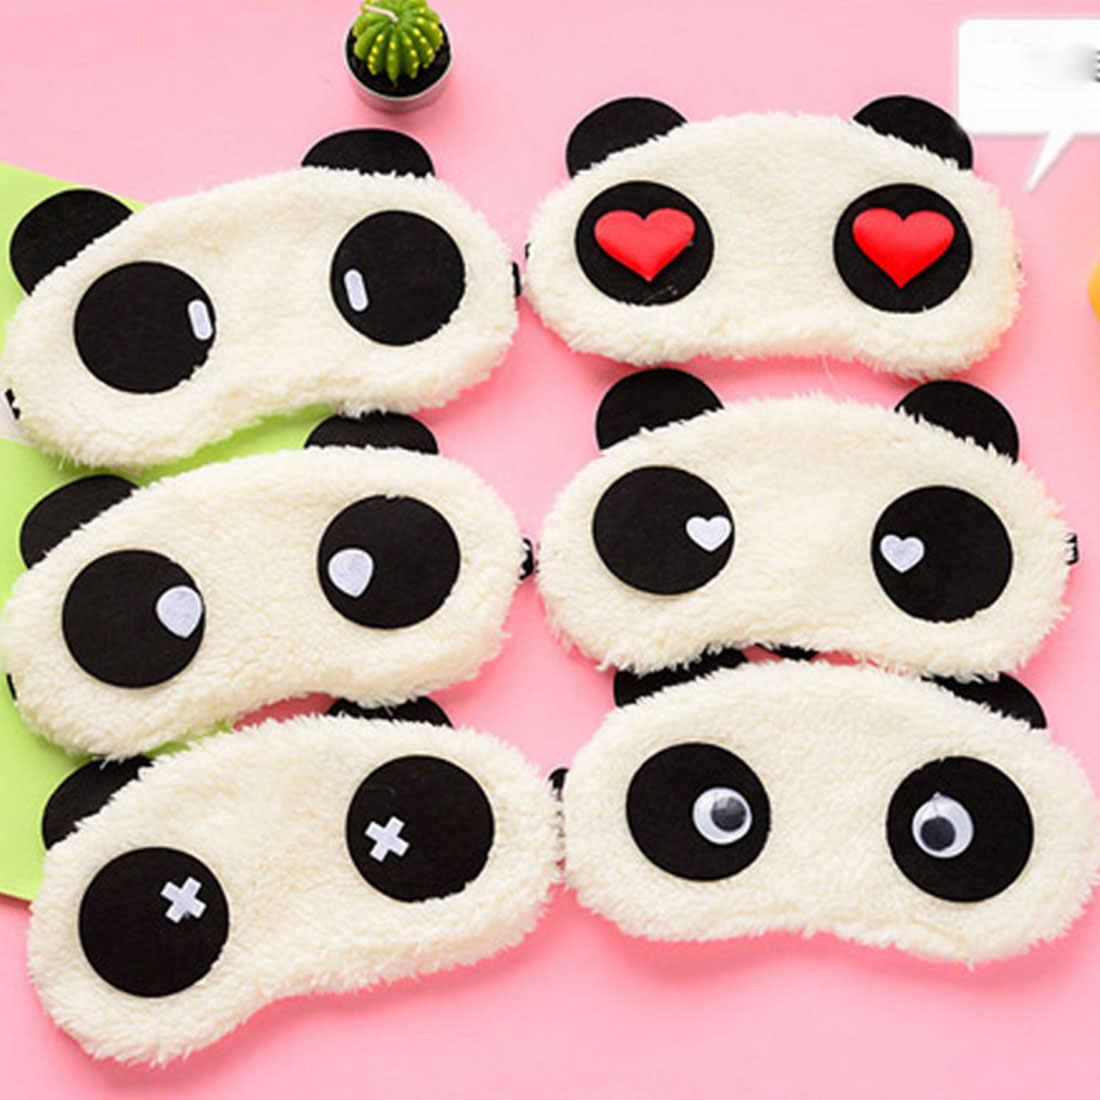 น่ารัก Panda Face Eye Travel Sleeping Mask Soft Padded Sleep Travel Shade Cover Rest Relax Sleeping Blindfold